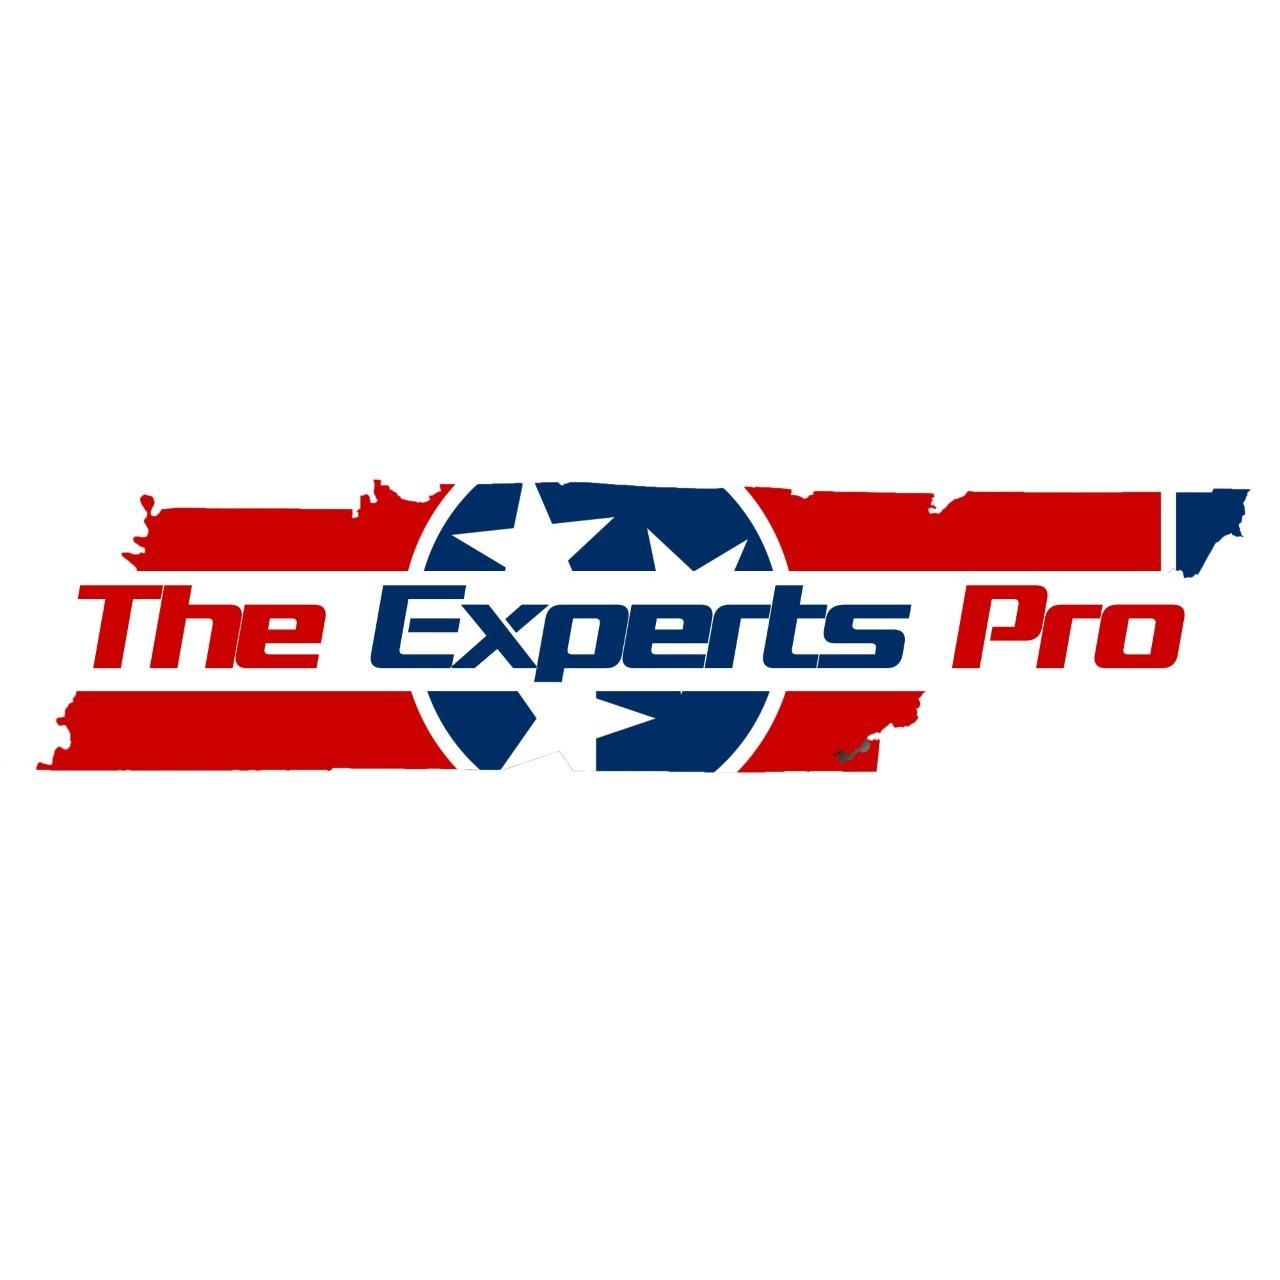 The Experts Pro